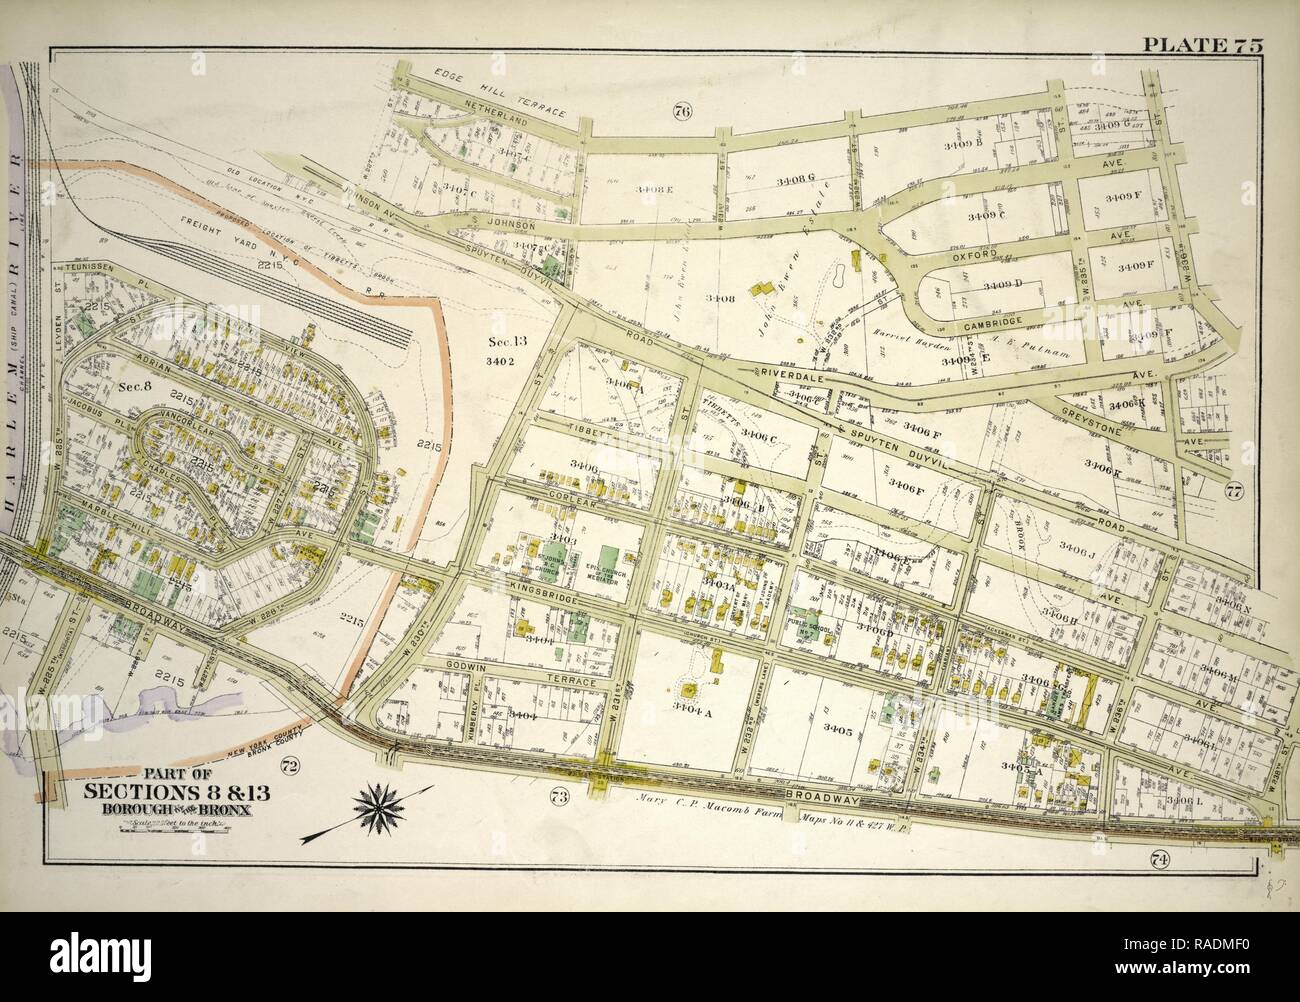 Plate 75, Part of Sections 8&13, Borough of the Bronx. Bounded by Netherland Avenue, W. 235th Street, Spuyten Duyvil reimagined - Stock Image